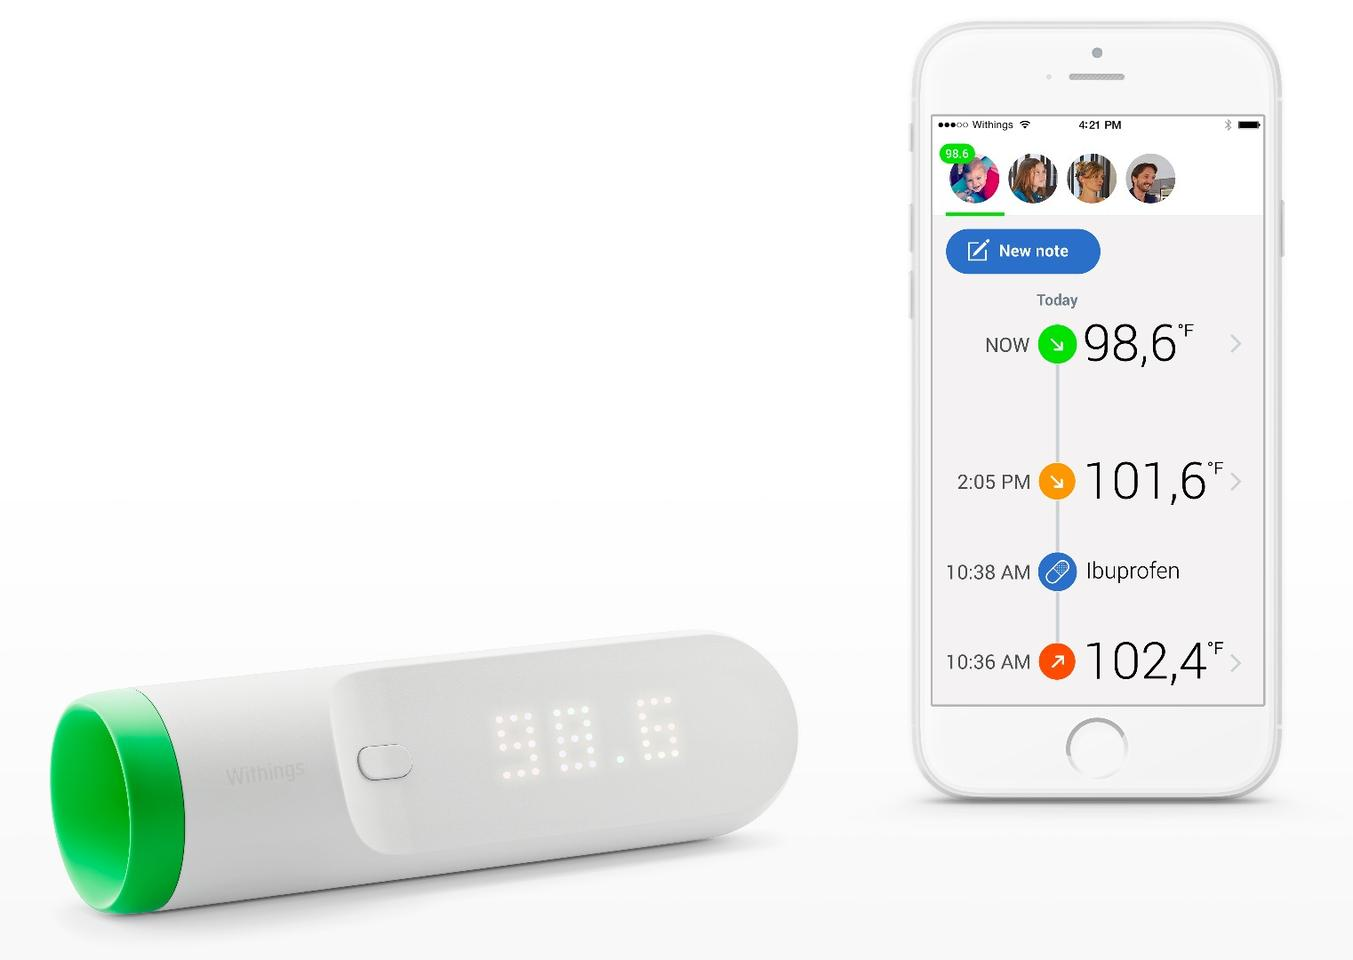 The Withings Thermo works with iOS and Android apps to log temperature readings and other additional symptoms